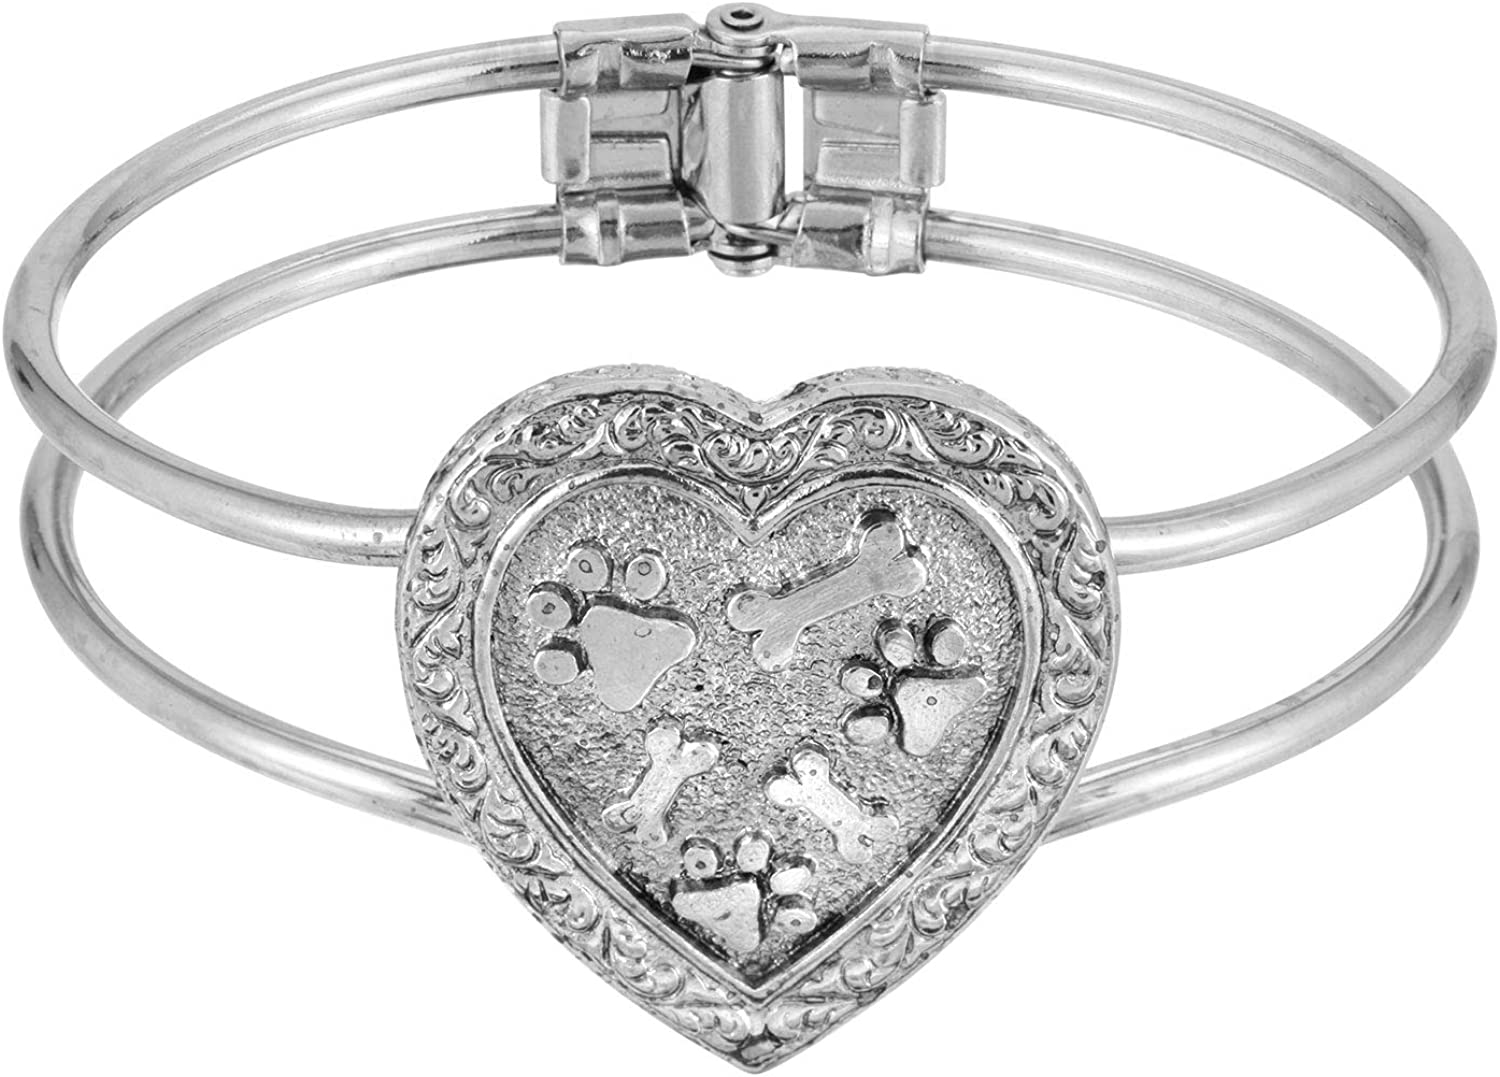 1928 Jewelry Pewter Paws and Bones Heart Cuff Bracelet